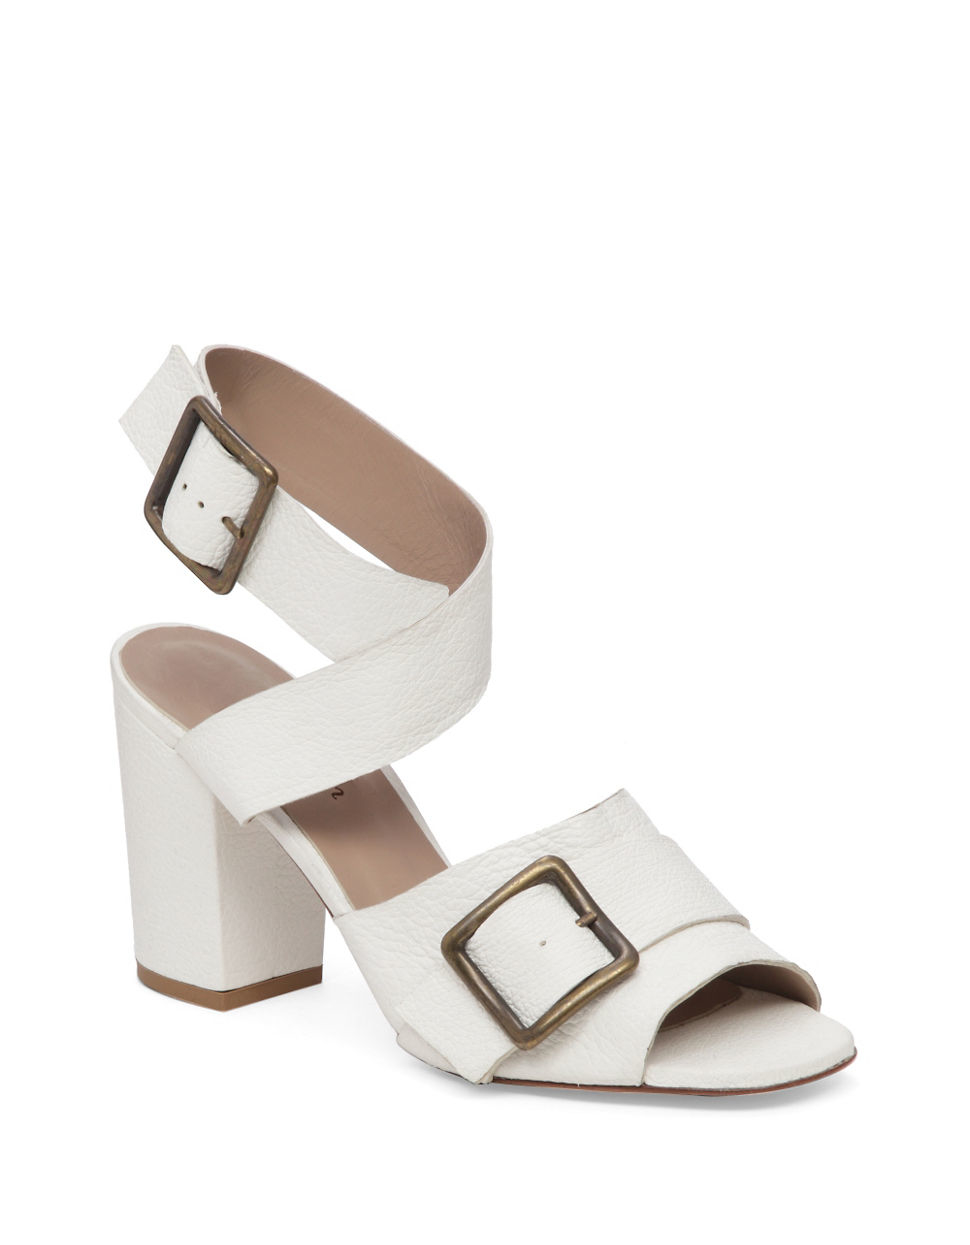 Delman Carly Leather Block Heel Sandals In White Lyst